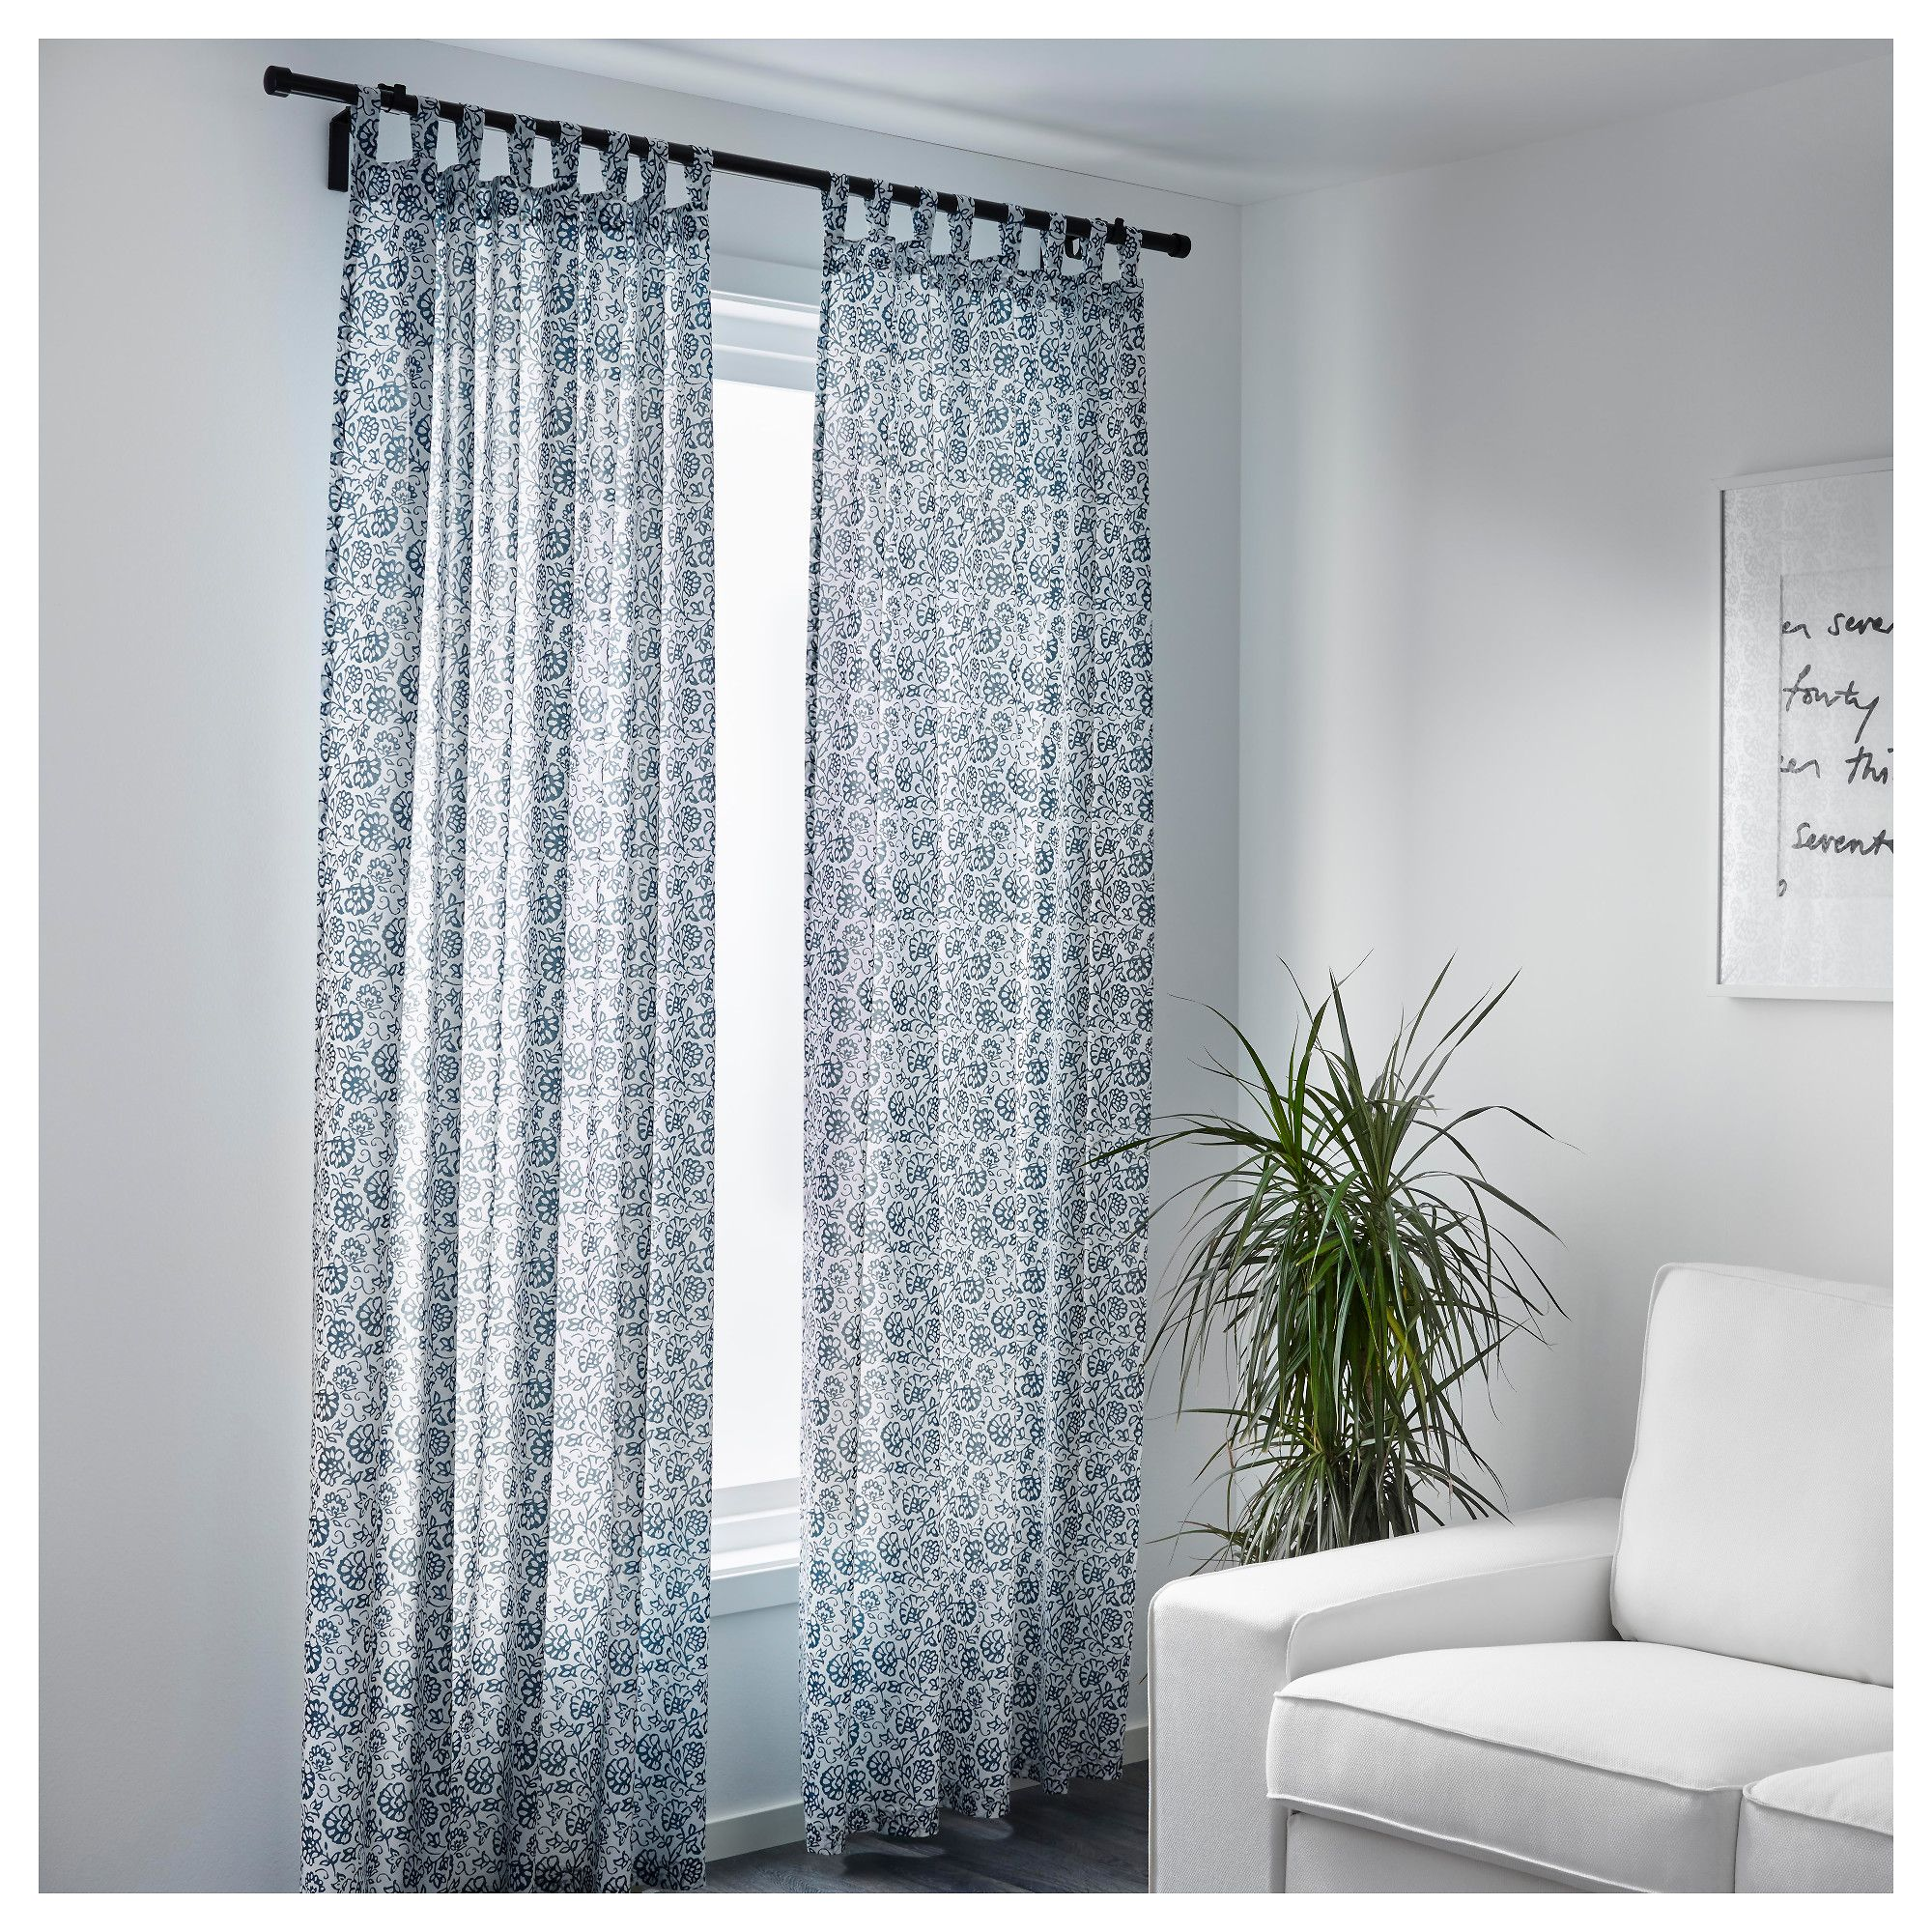 I think these Ikea MJLKRT curtains would look nice in my